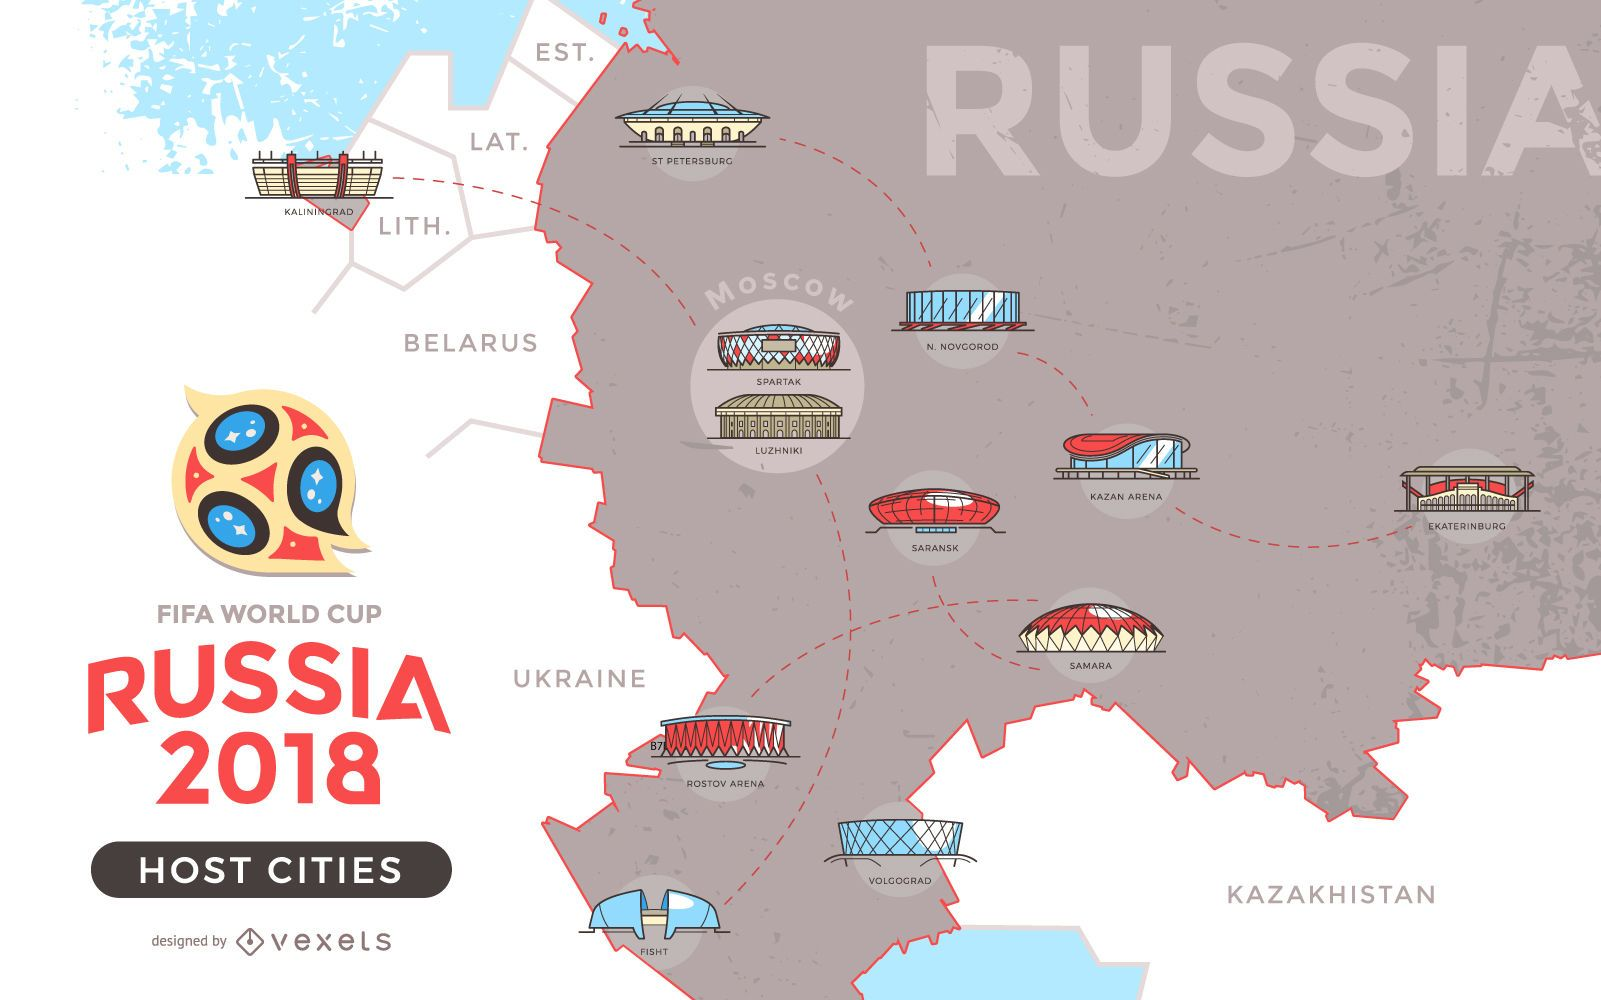 Russia 2018 host cities map - Vector download